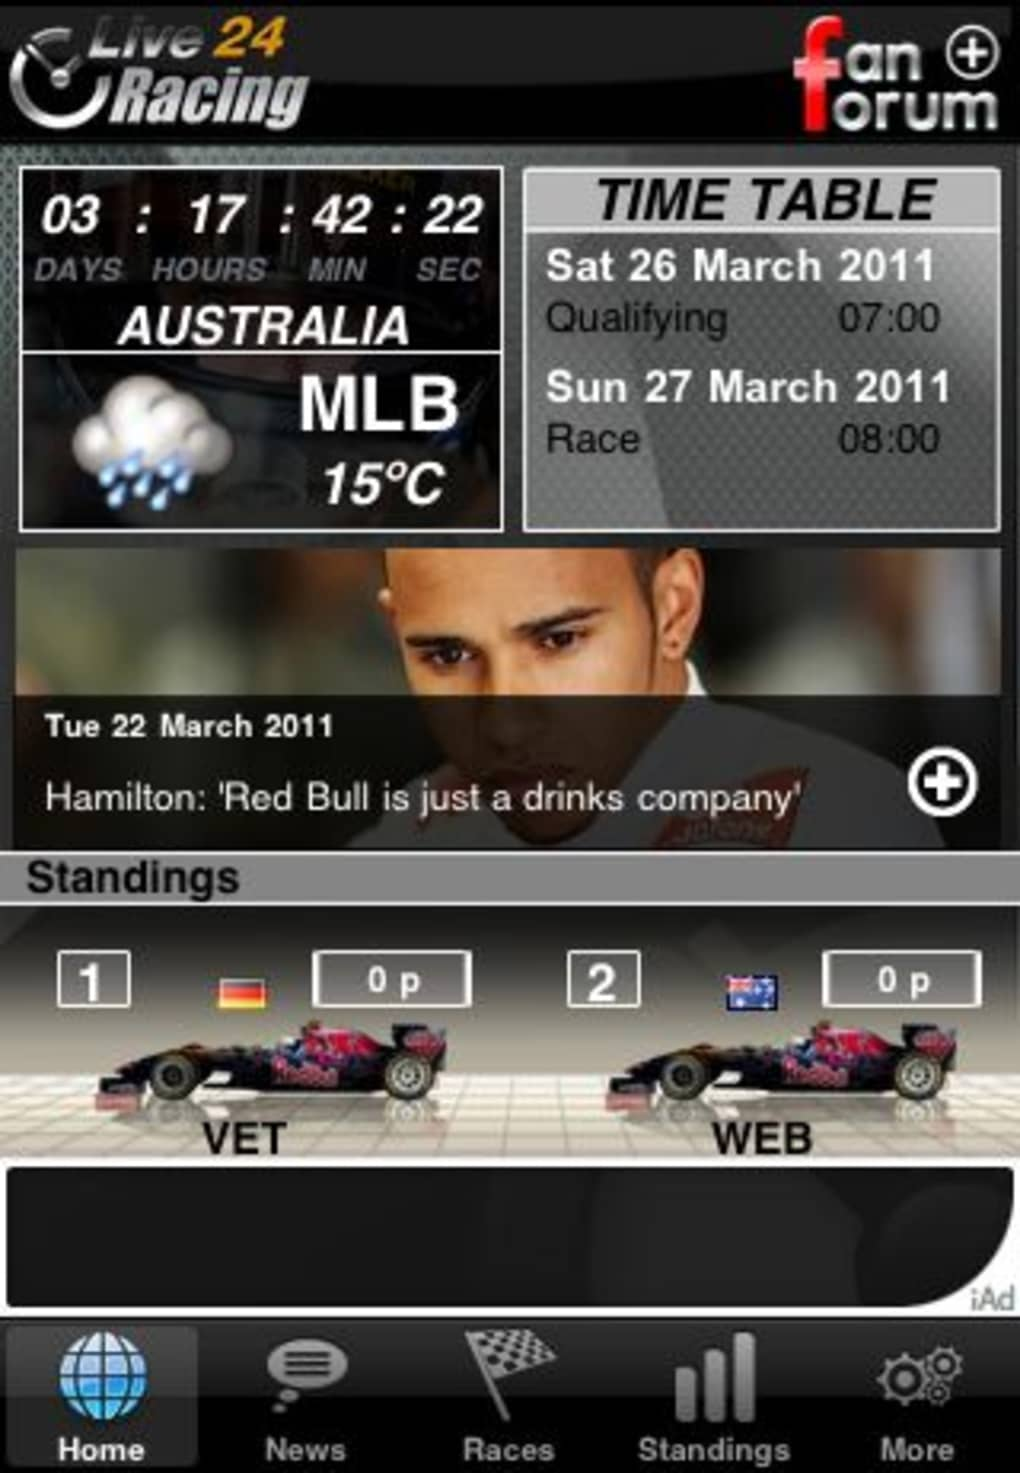 F1 2011 Live24 for iPhone - Download